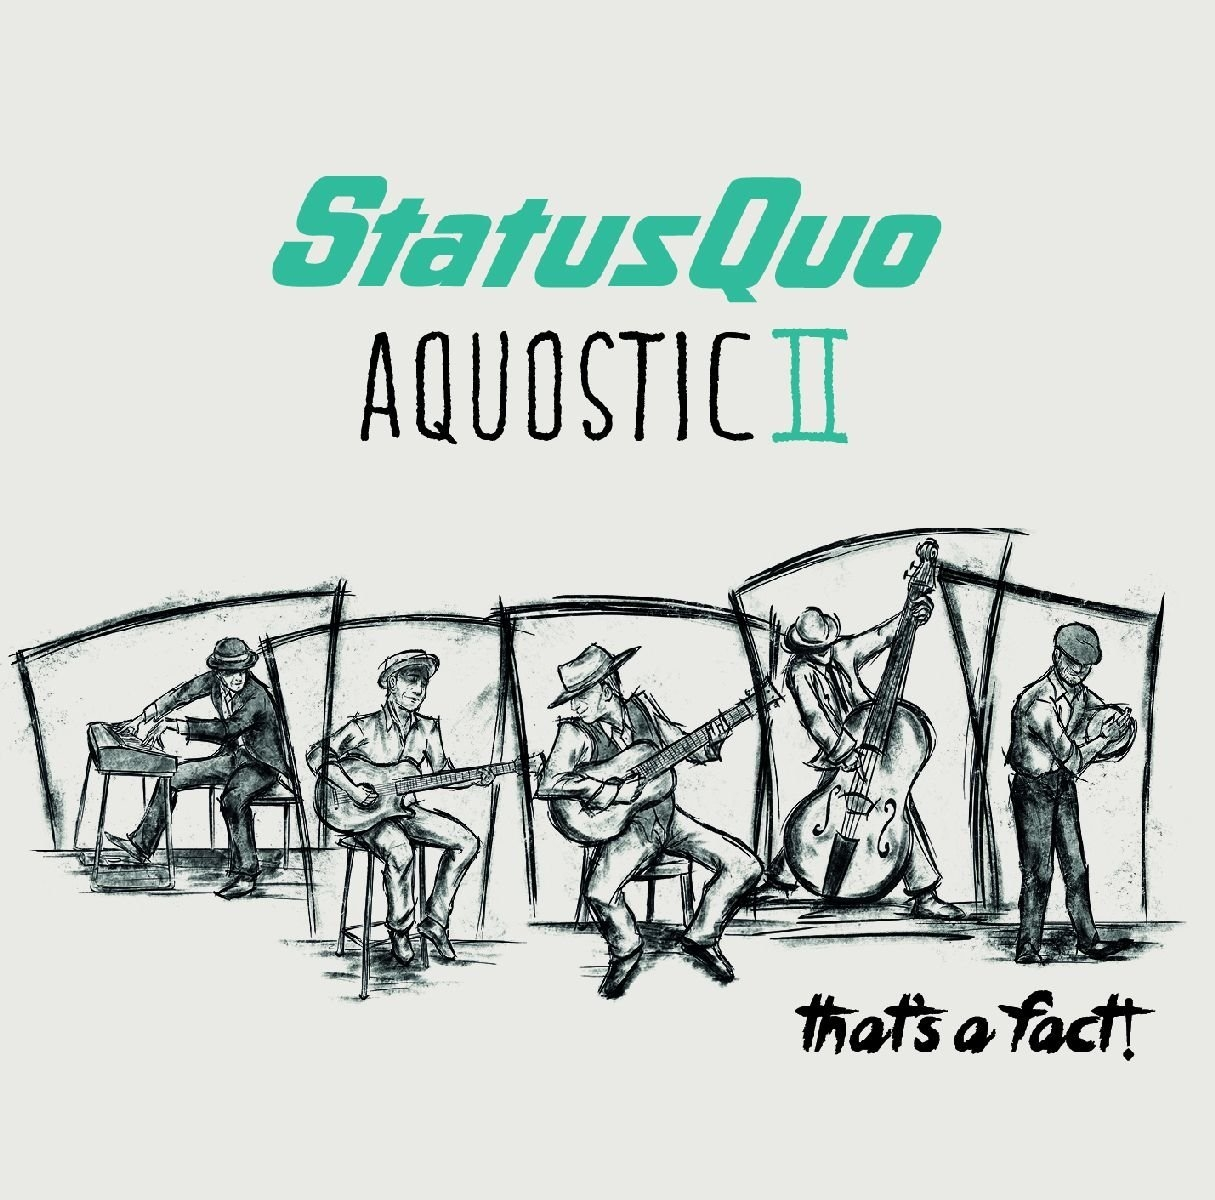 Aquostic II - That's A Fact